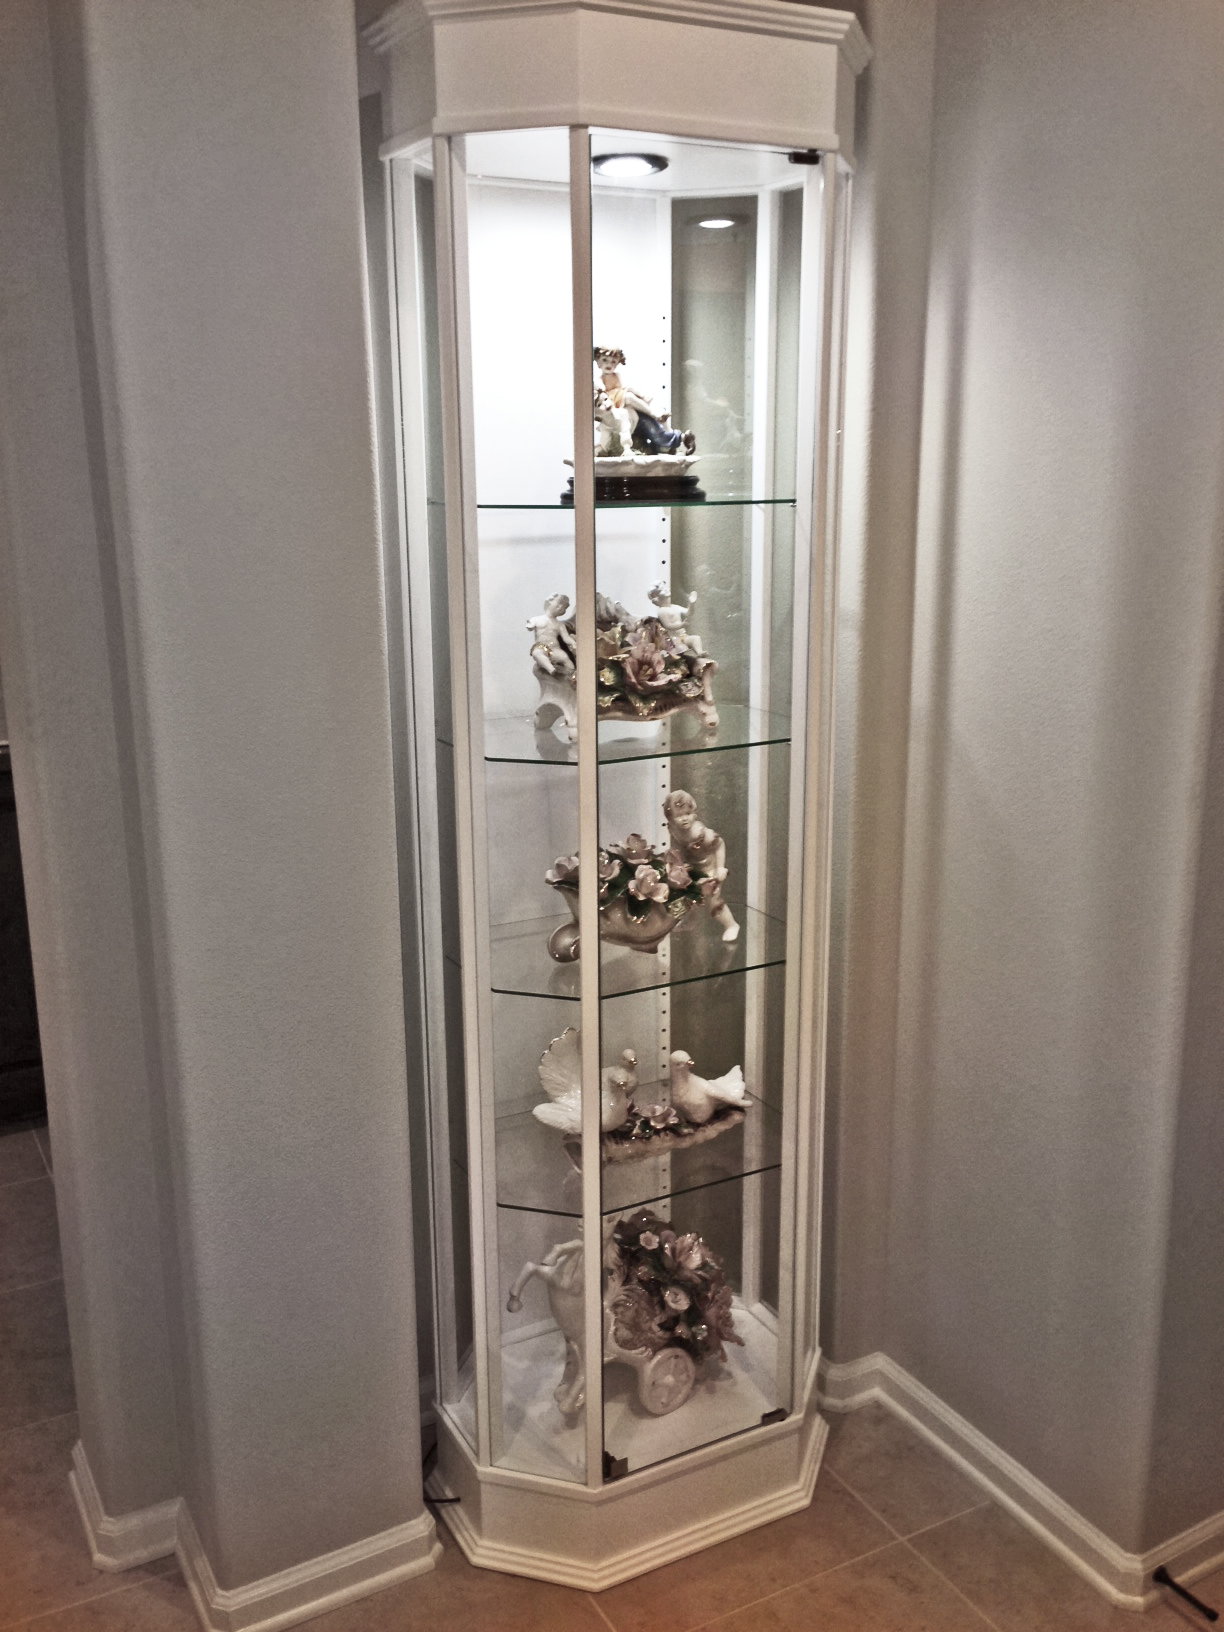 Octagon Tower Display Case Retail Store